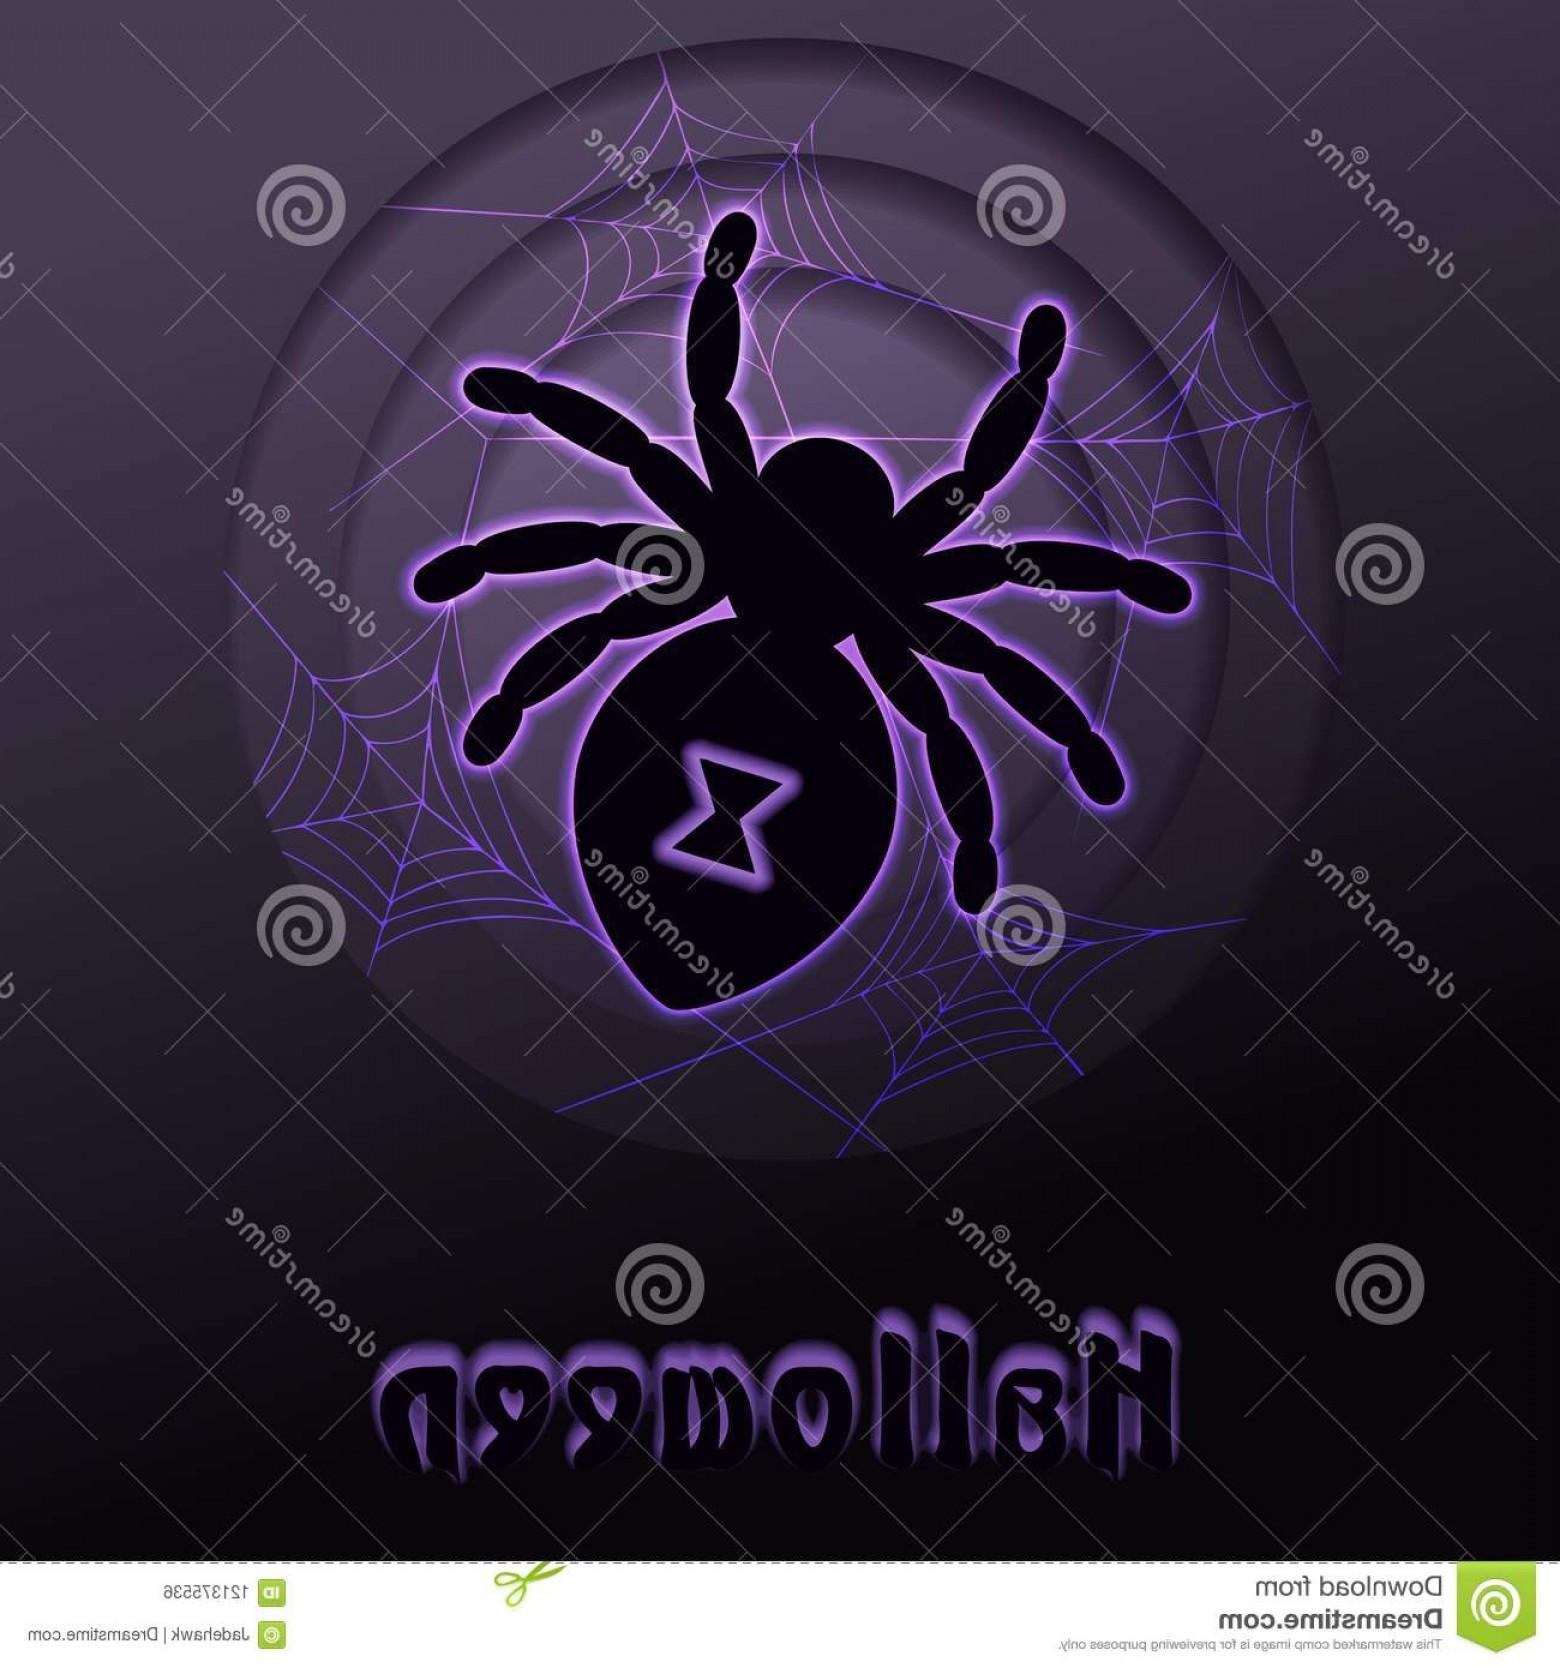 Easy Spider Vector Illustration: Glowing Spider Paper Cut Halloween Design Minimalistic Papercut Design Glowing Halloween Silhouette Graphics Grouped Image